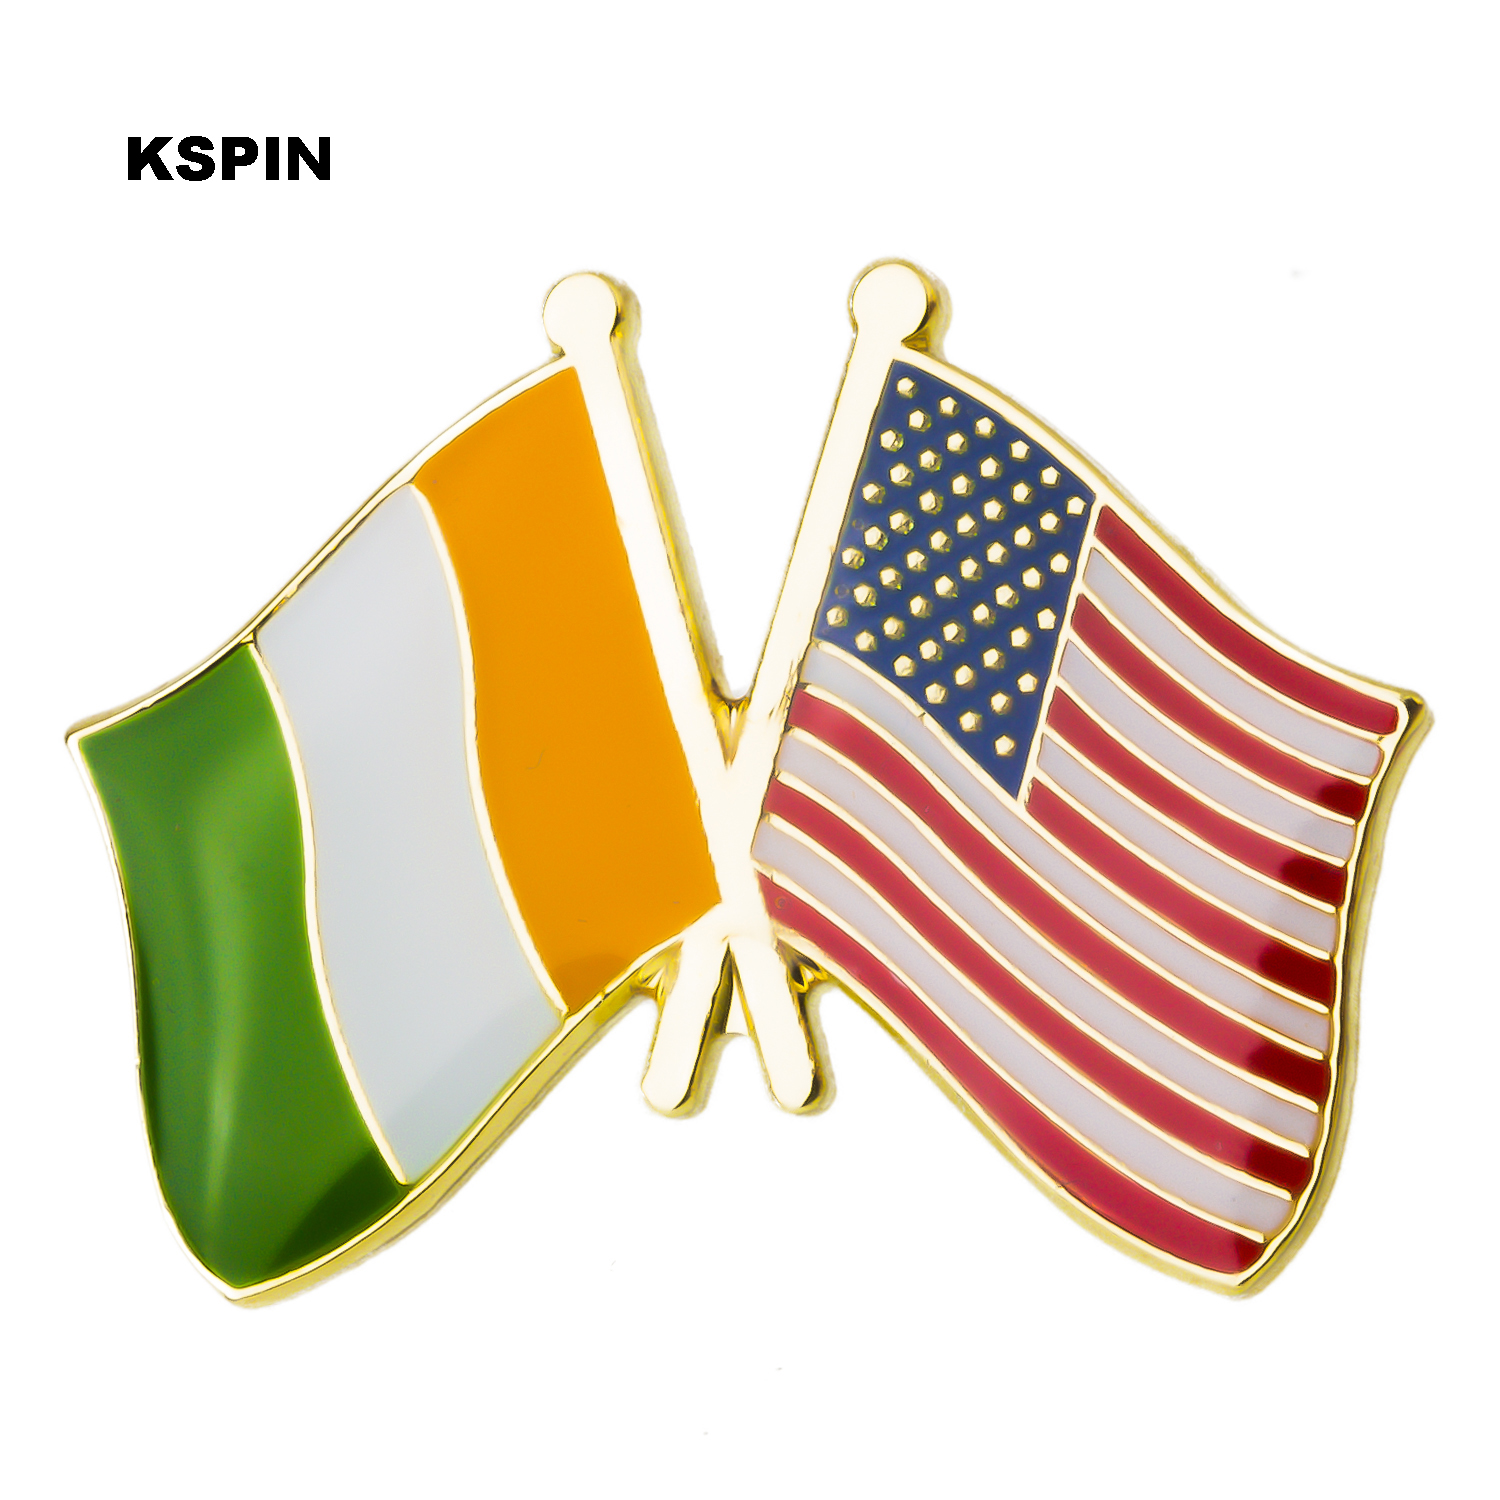 2019 Latest Design 1pcs Rainbow And Ireland Friendship Badge Icon Bag Decoration Buttons Metal Badges Brooch For Clothes Xy0240 Home & Garden Arts,crafts & Sewing